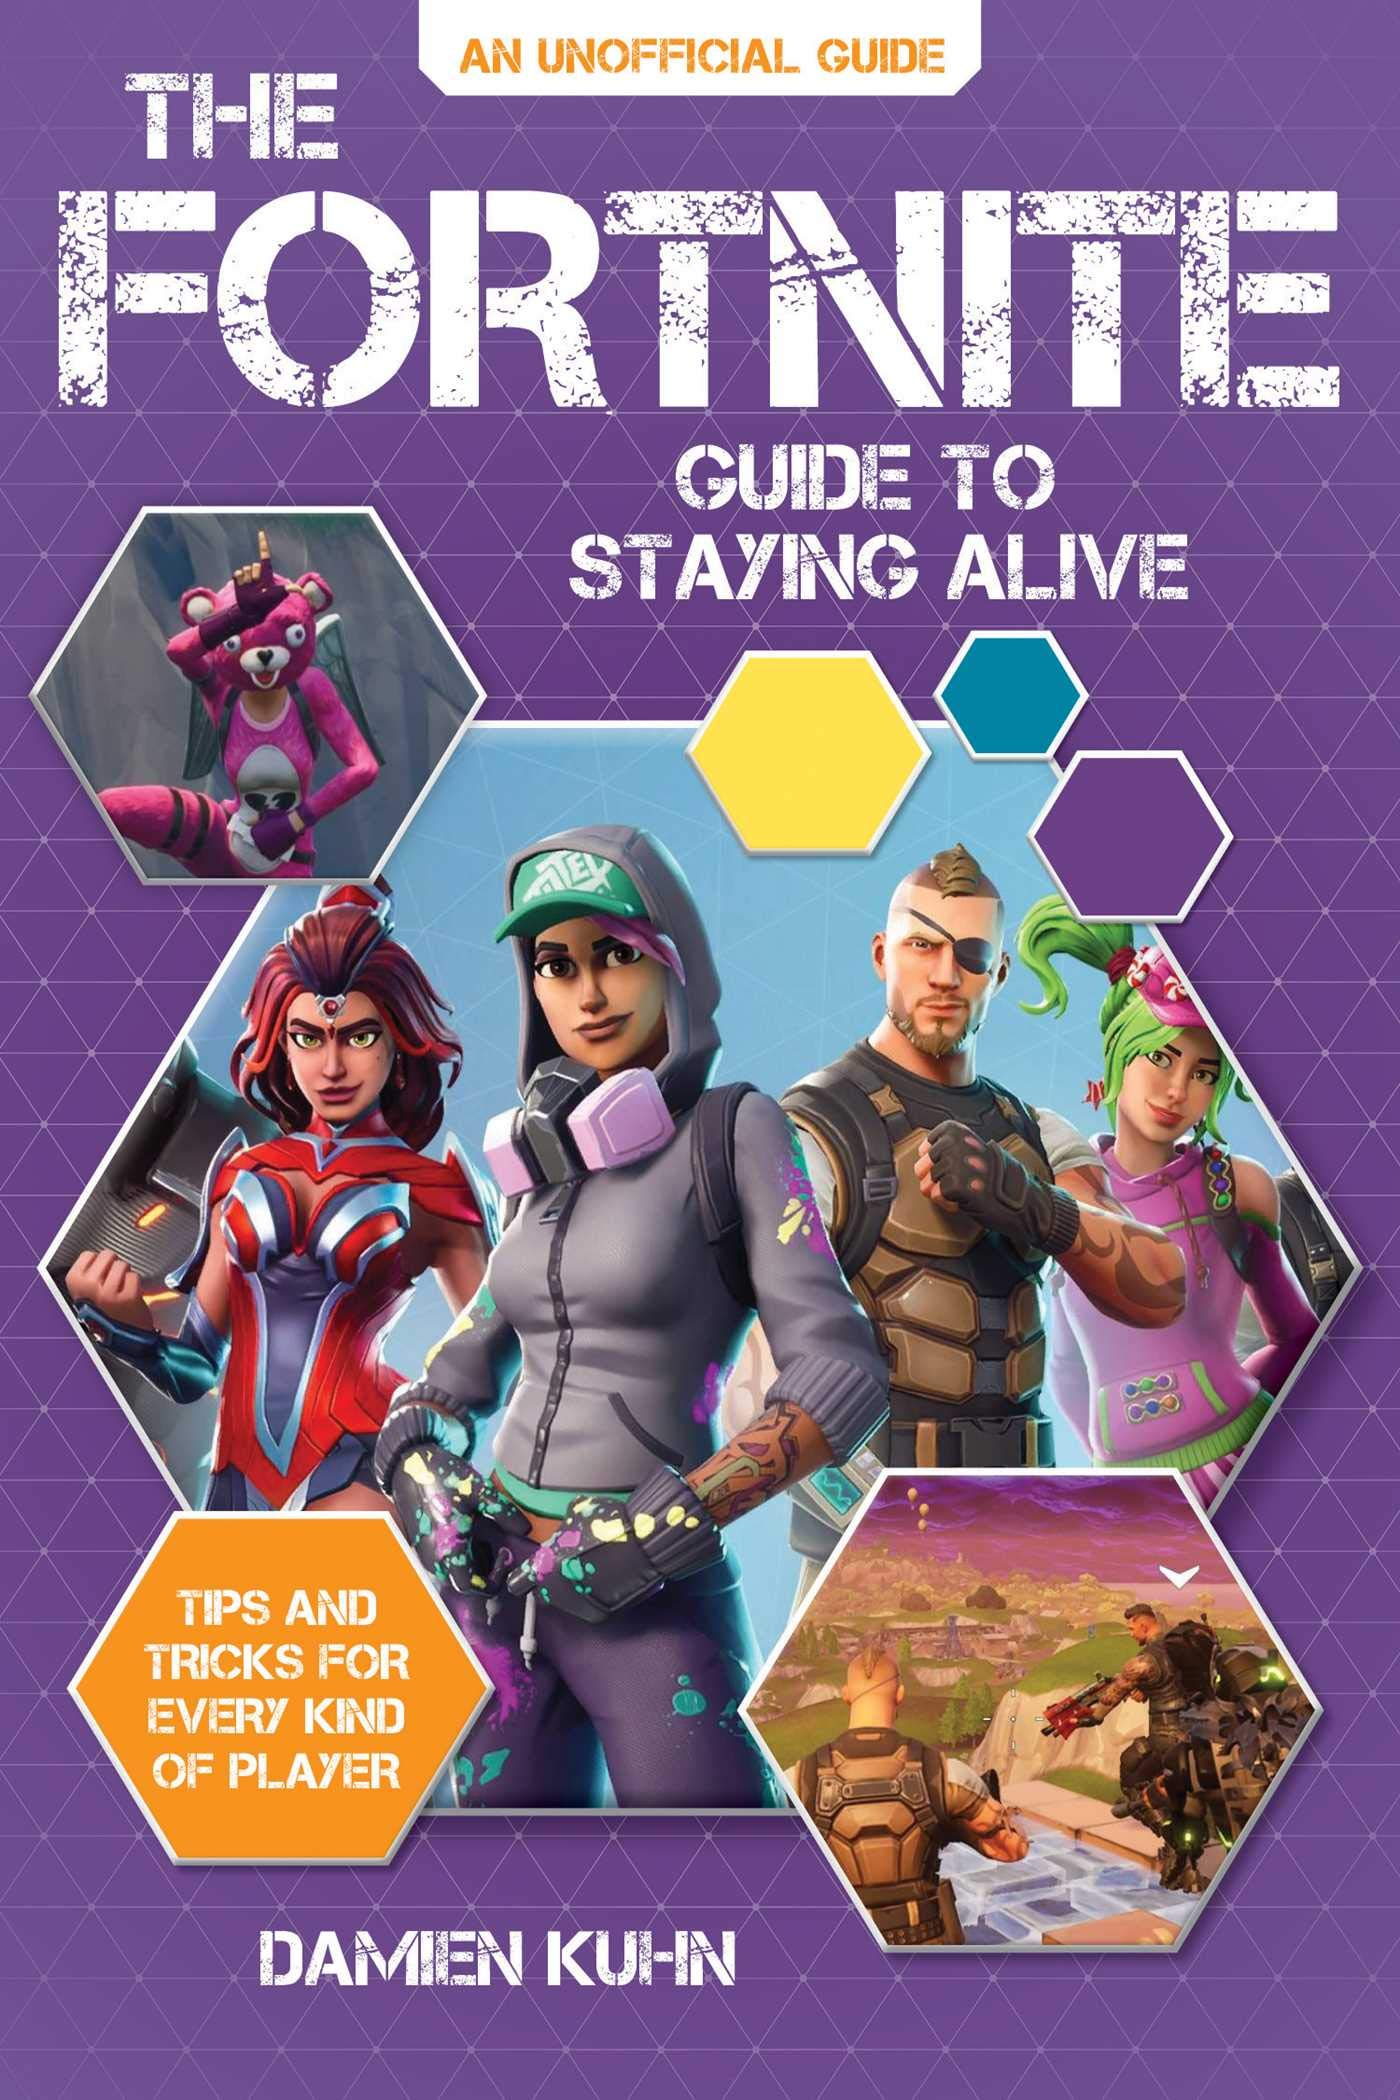 The Fortnite Guide To Staying Alive Tips And Tricks For Every Kind